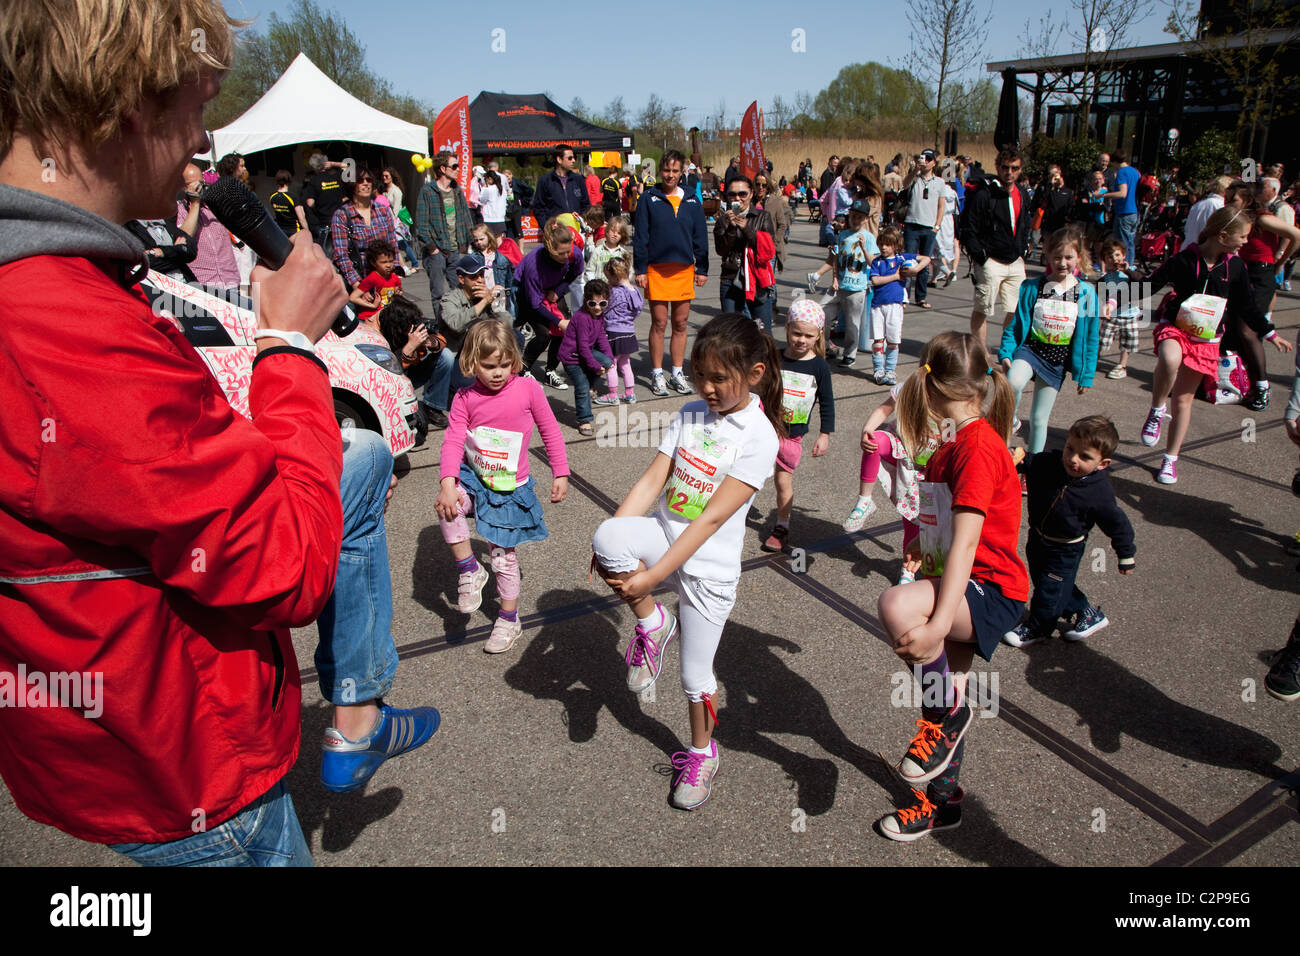 Warming up for children in the Westerpark, Amsterdam, The Netherlands Stock Photo